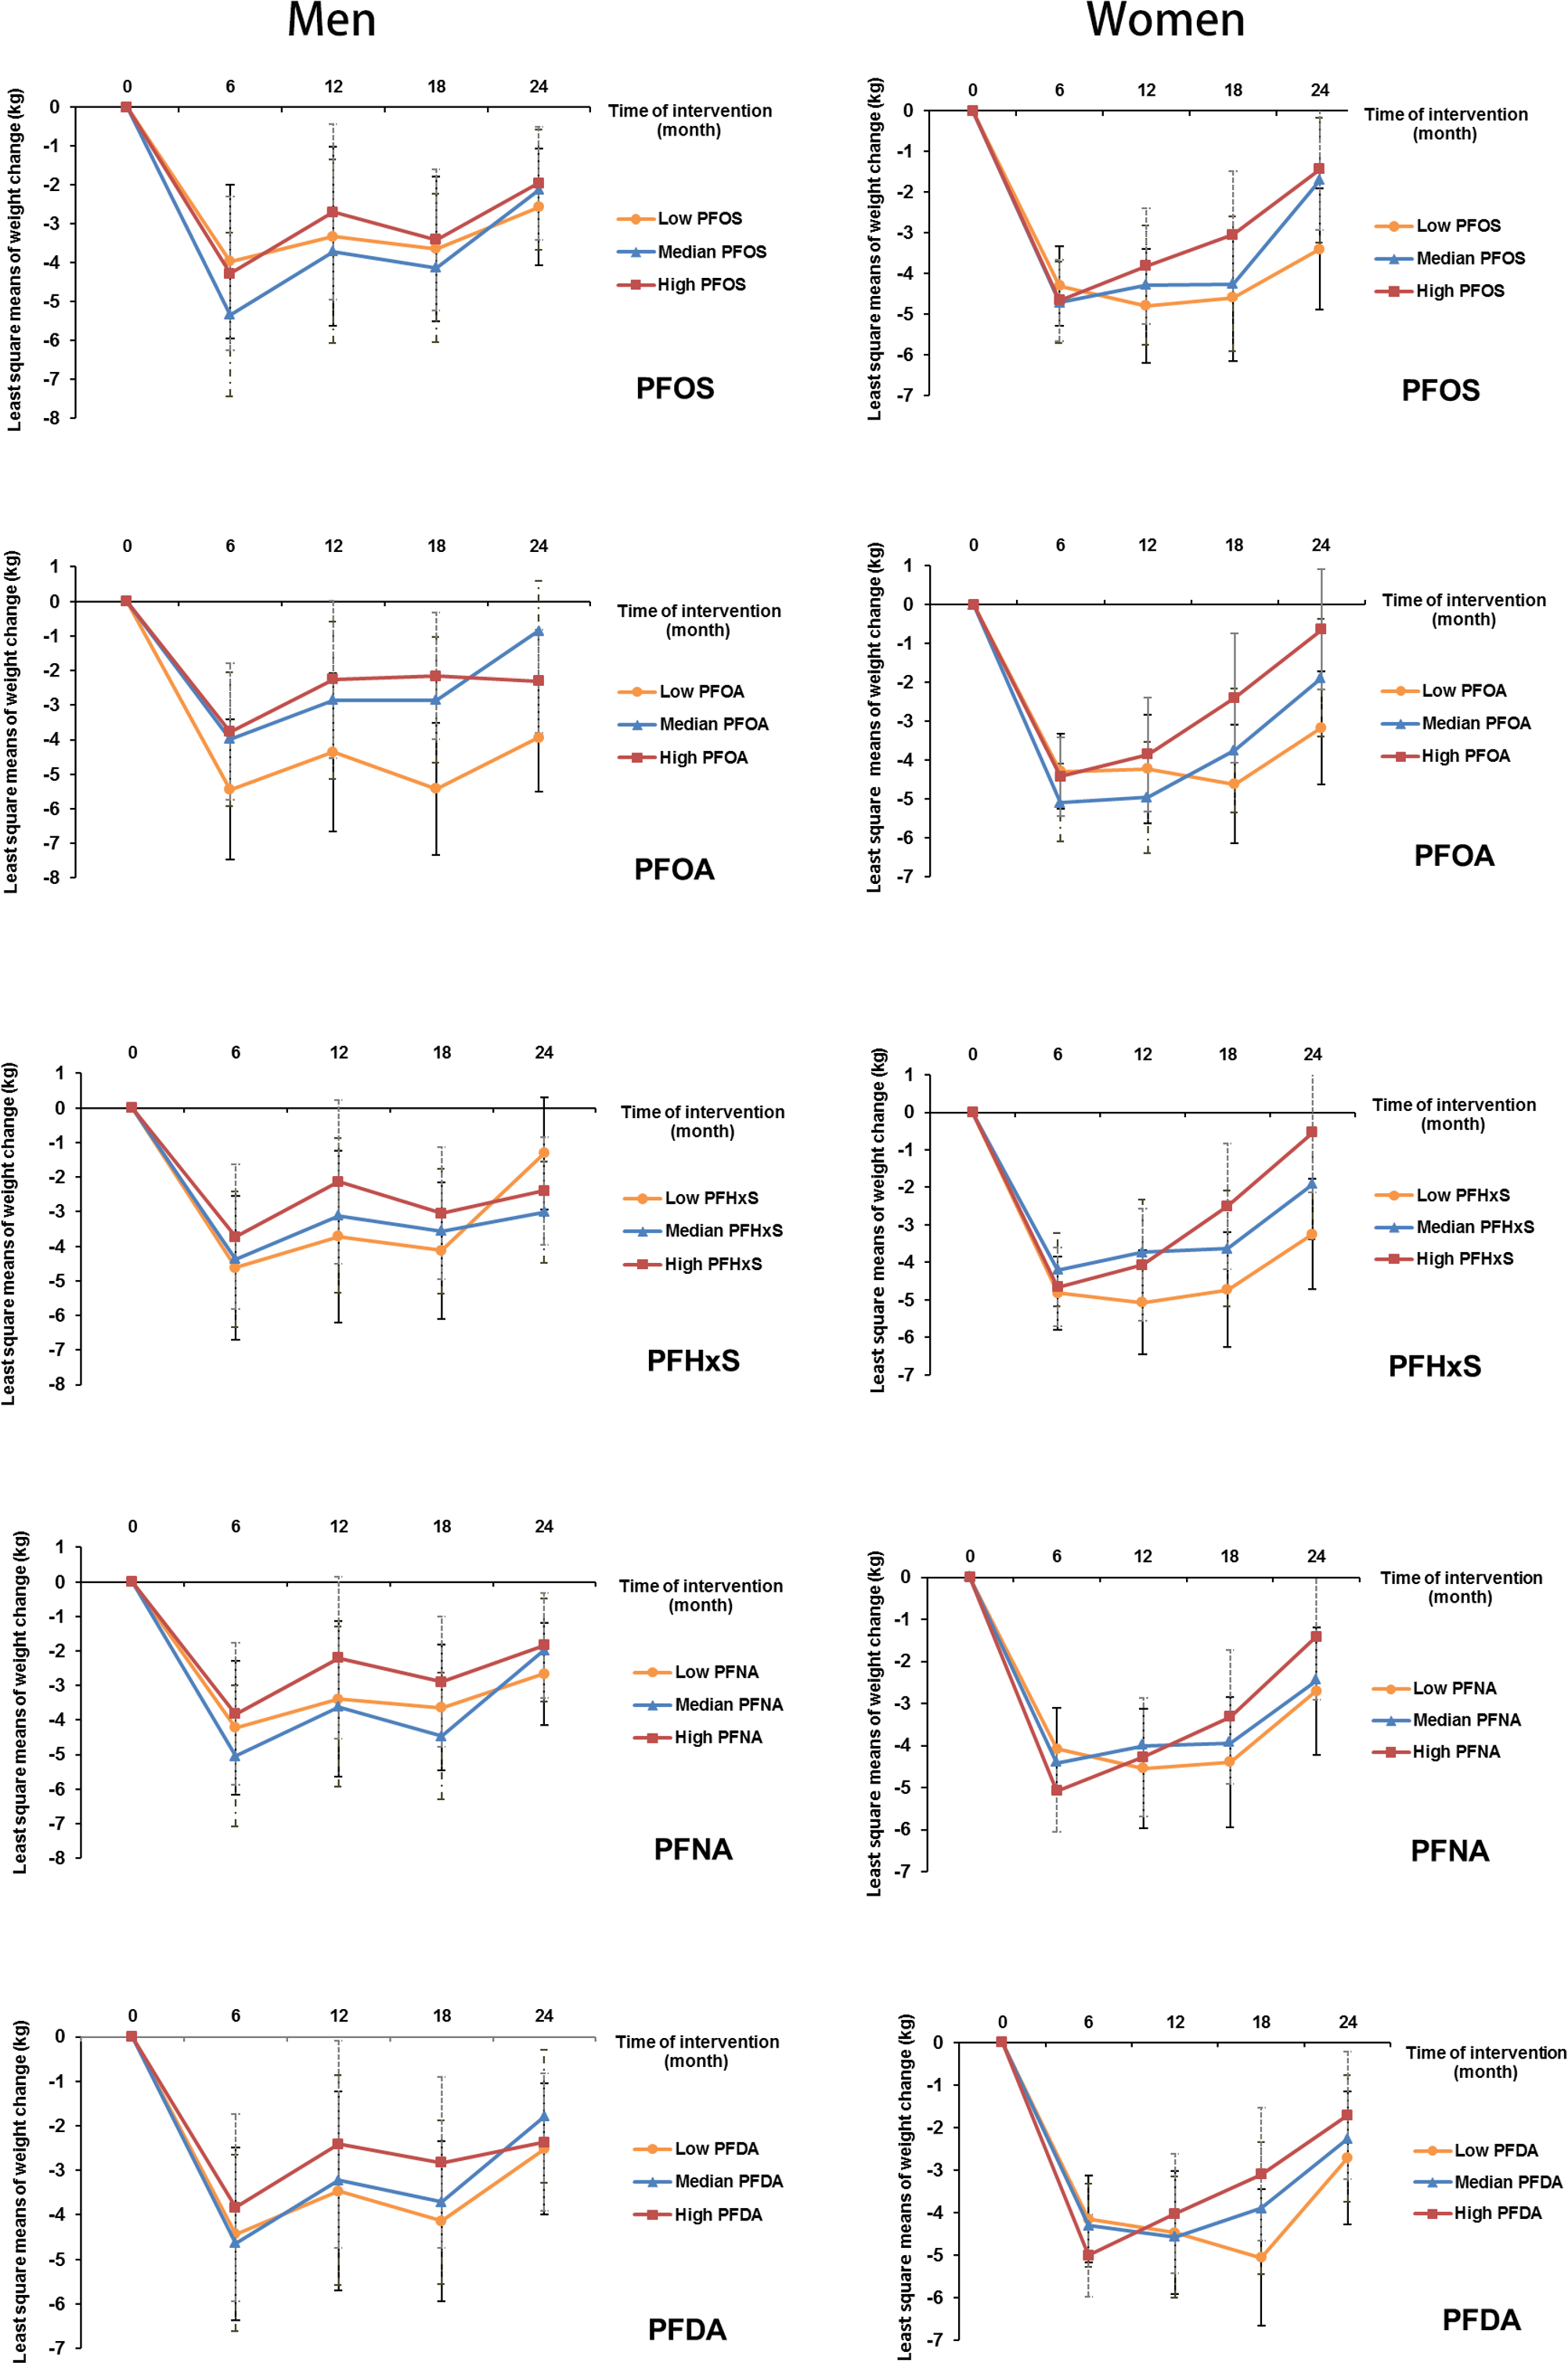 Trajectory of changes in body weight in men and women according to tertiles of PFAS concentrations.